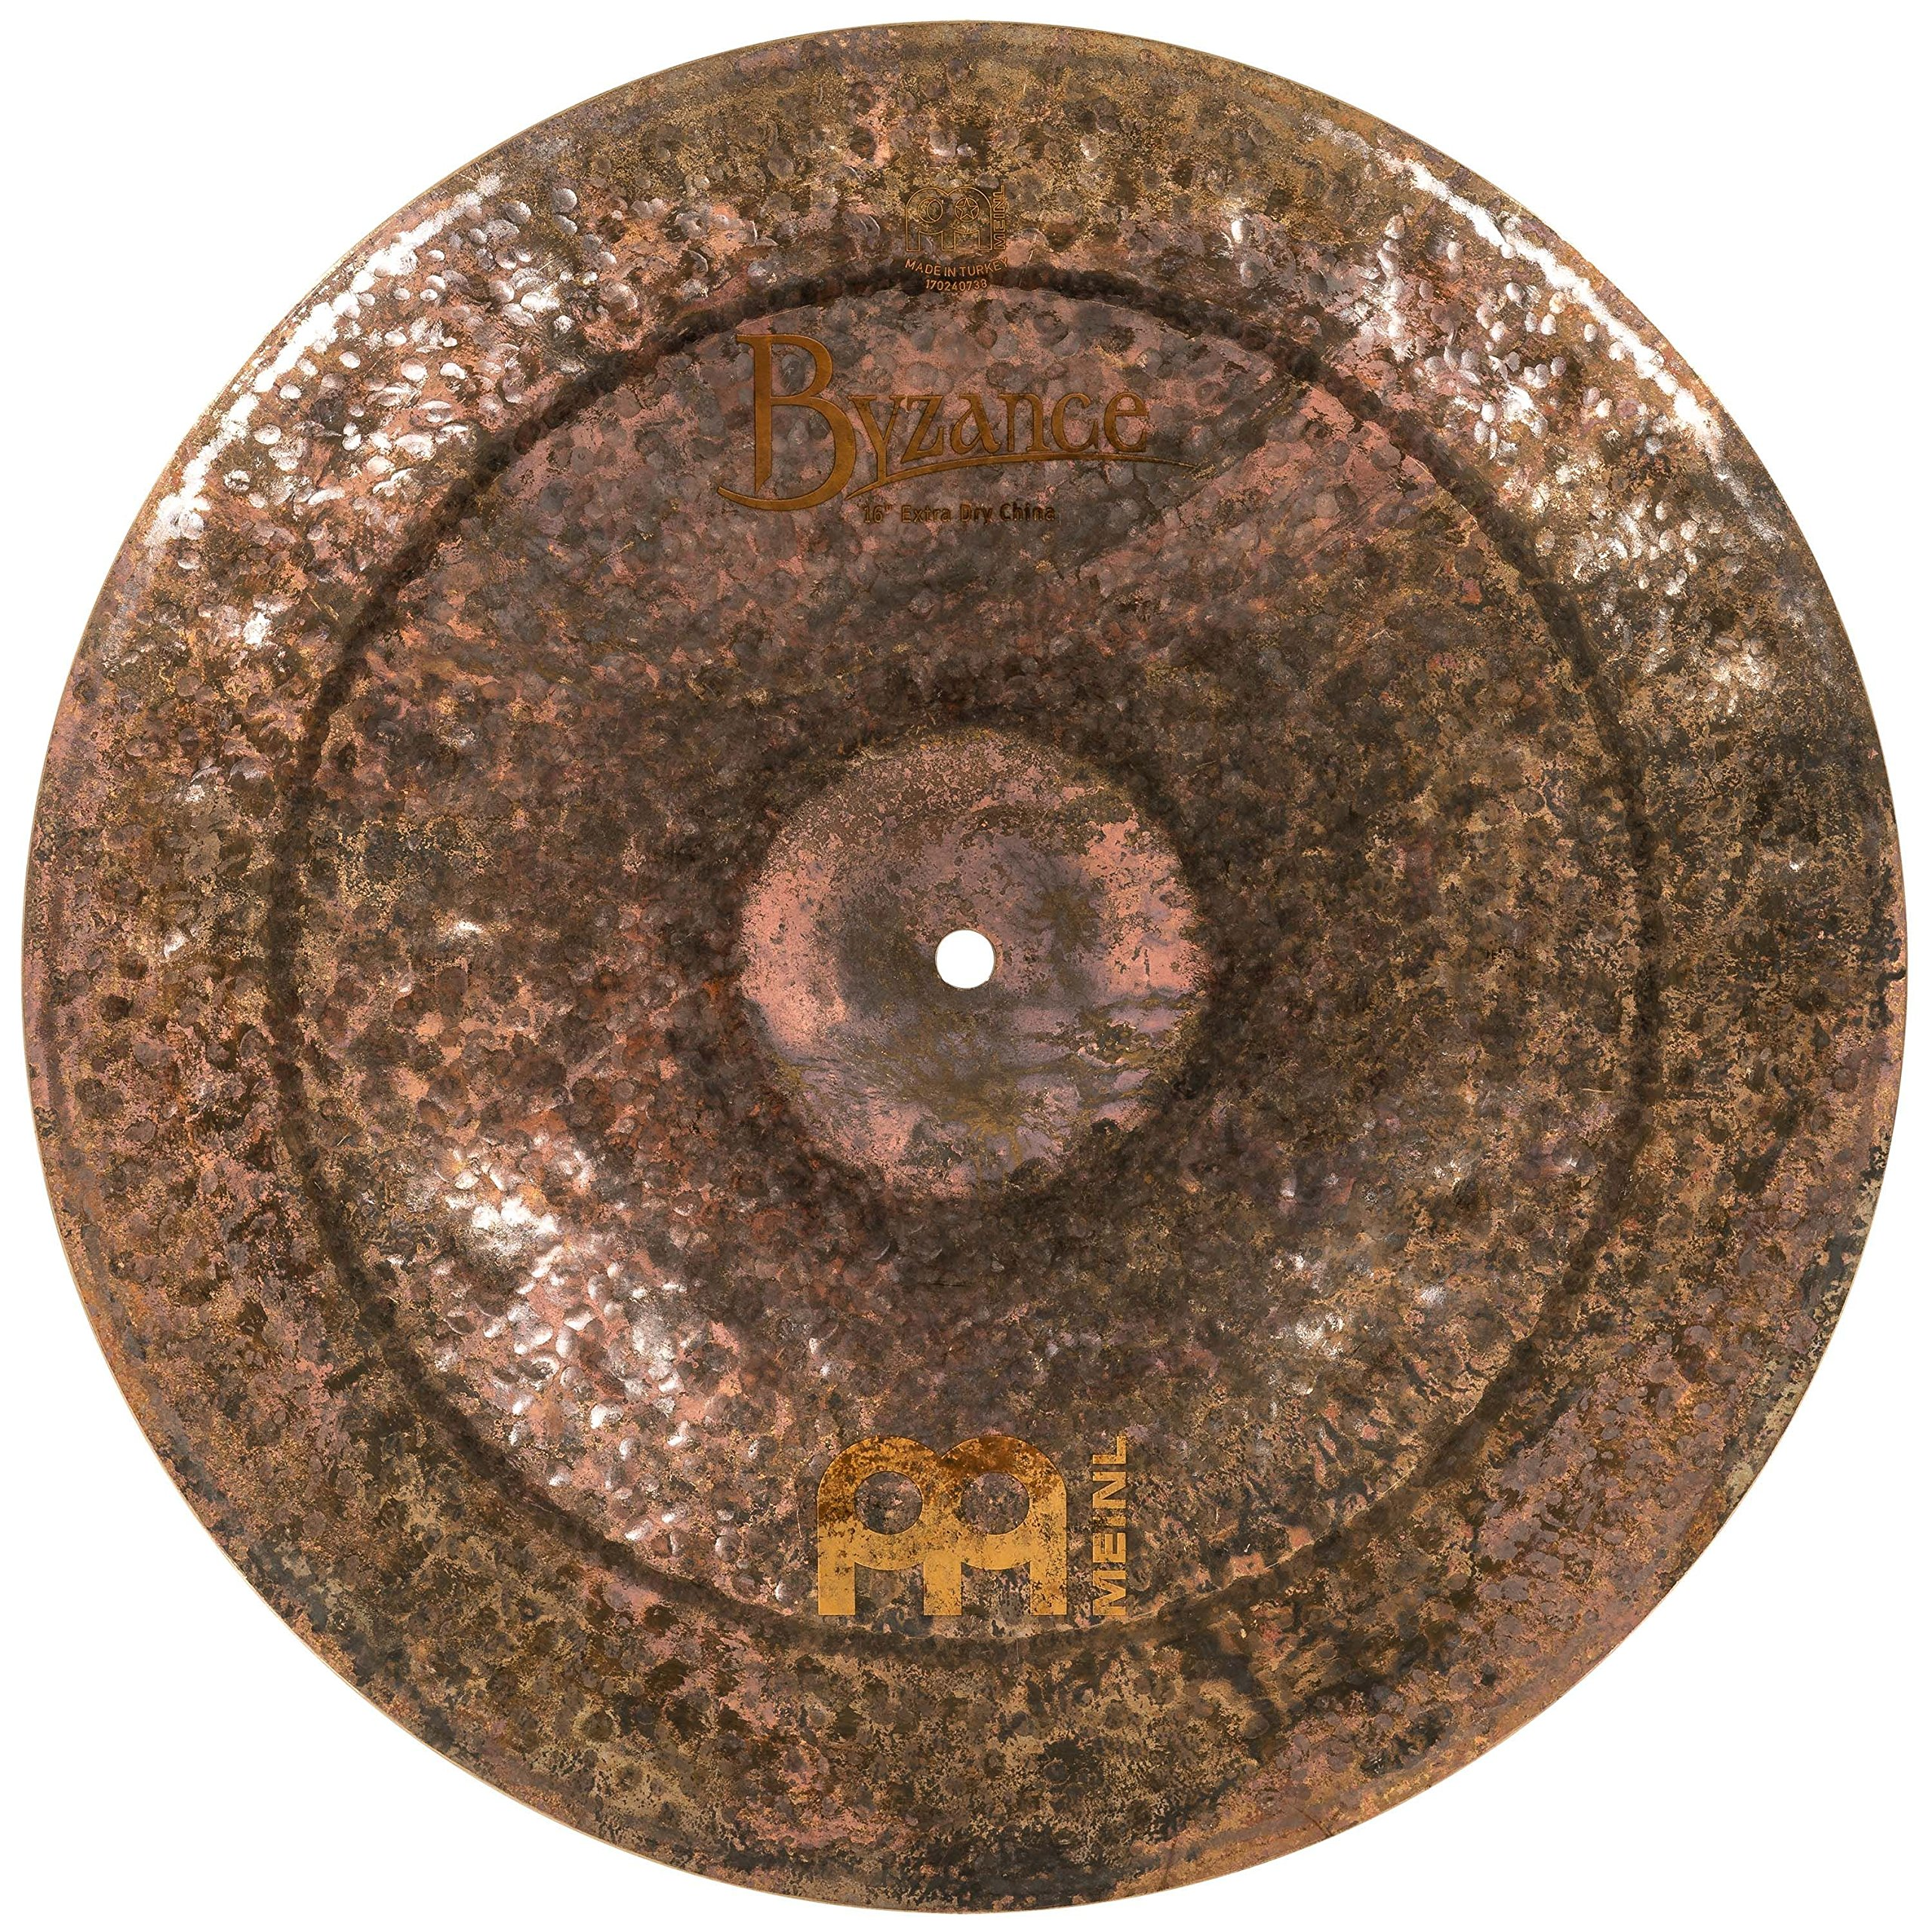 Meinl Cymbals B16EDCH Byzance Extra Dry 16-Inch China Cymbal (VIDEO) by Meinl Cymbals